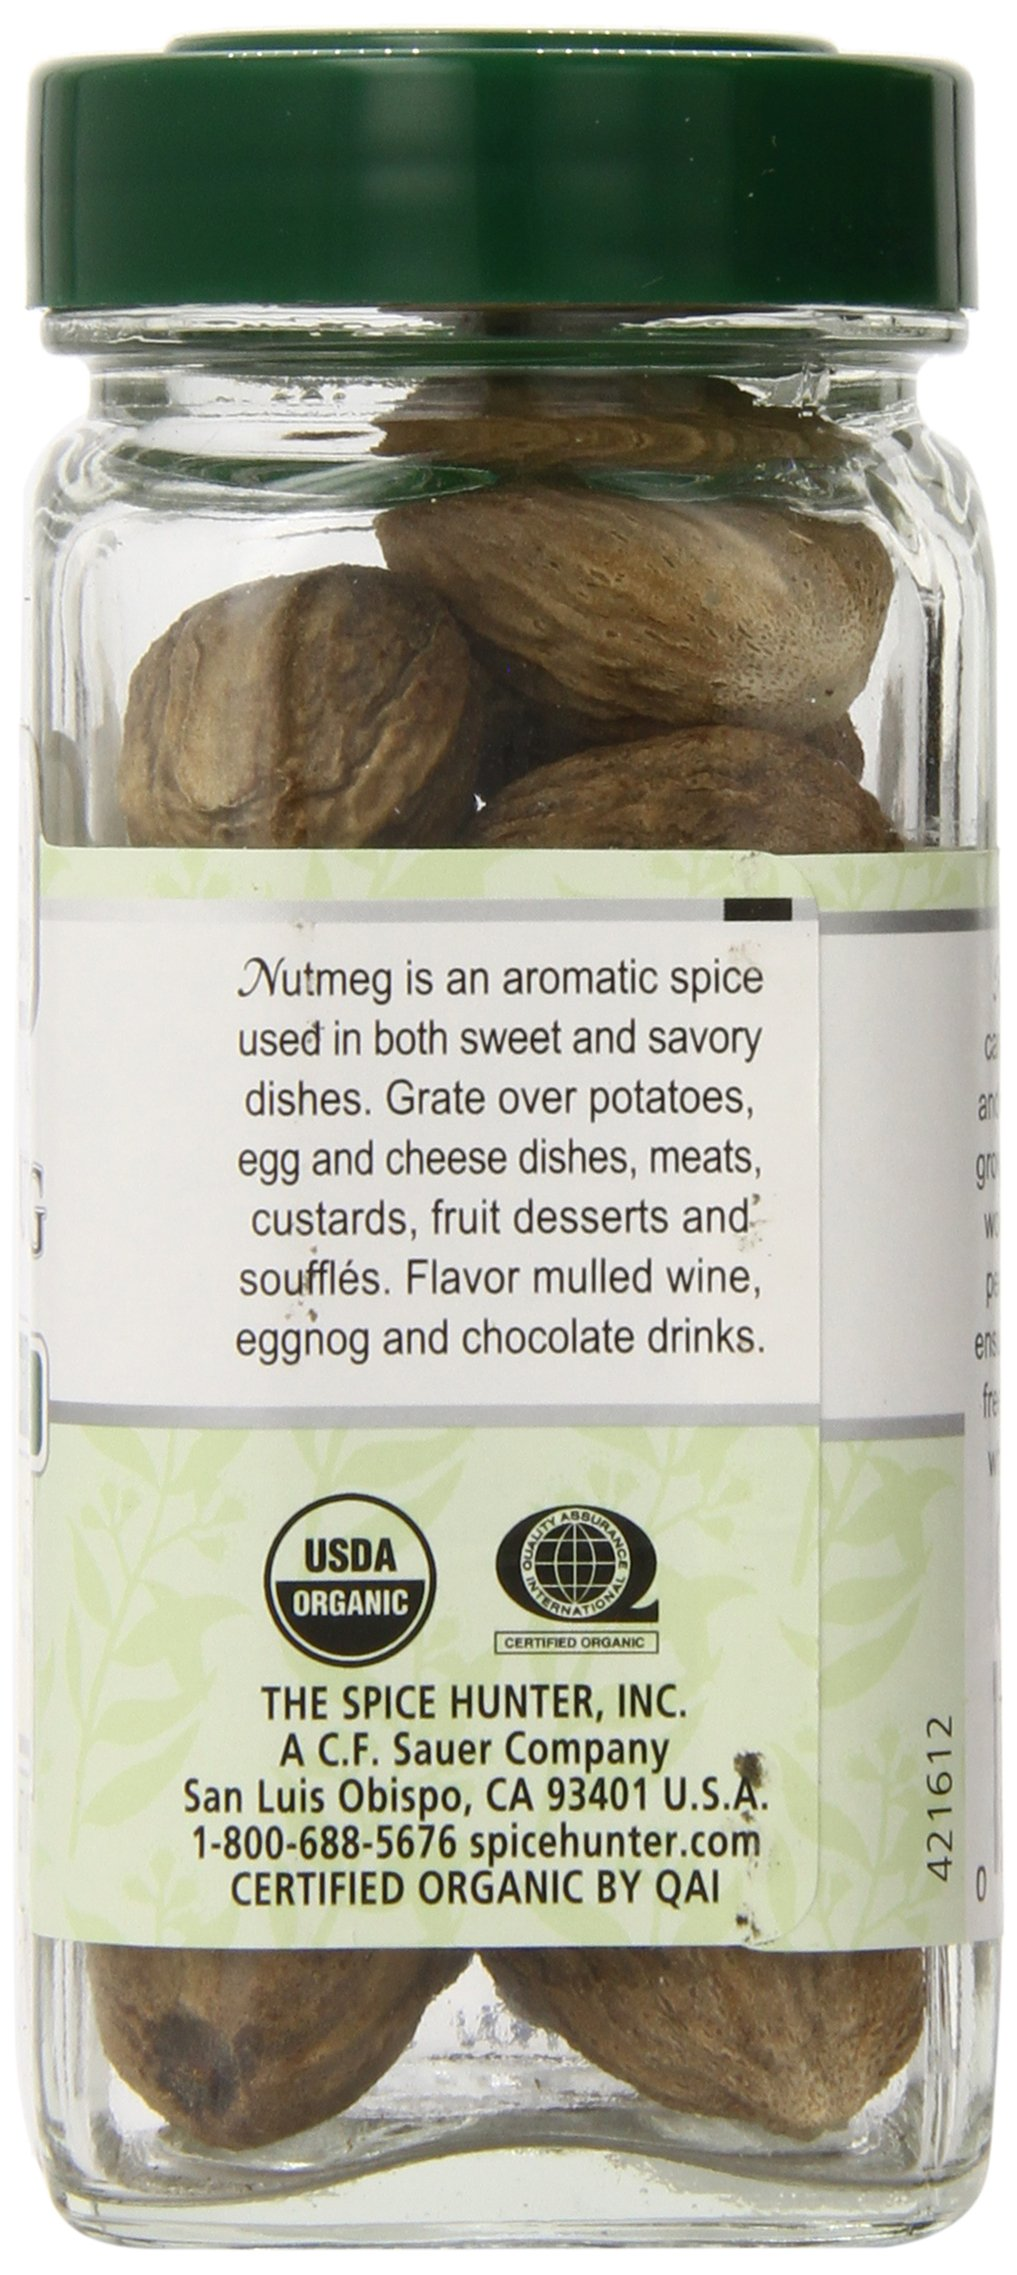 The Spice Hunter Organic Nutmeg, Whole, 1.8 oz. jar by Spice Hunter (Image #2)